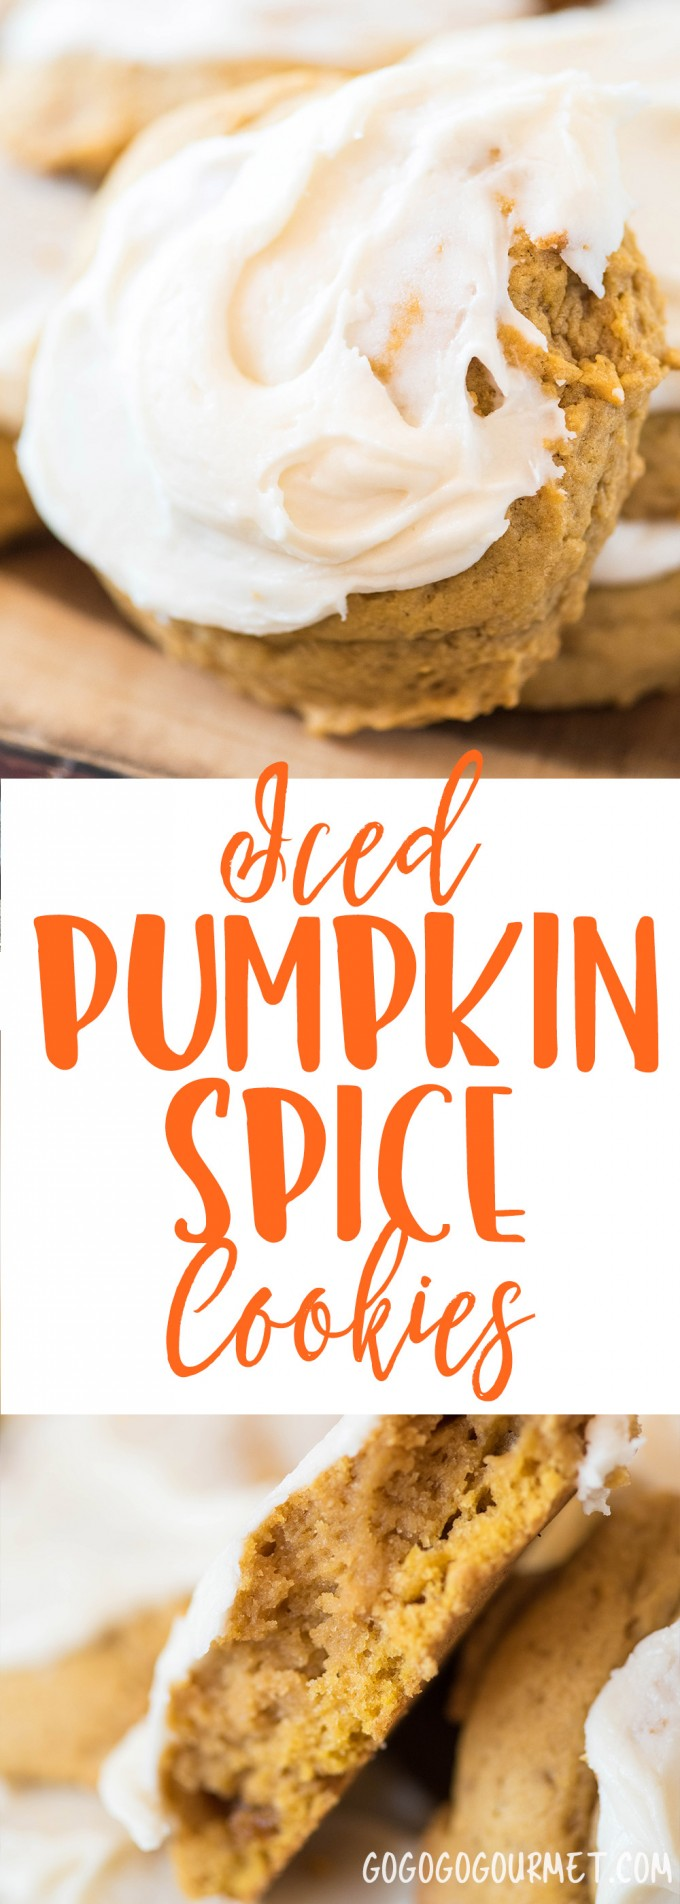 These Iced Pumpkin Spice Cookies are the perfect way to celebrate fall. They are cake-like, full of fall flavor and topped with a creamy frosting. A fall staple for years! |